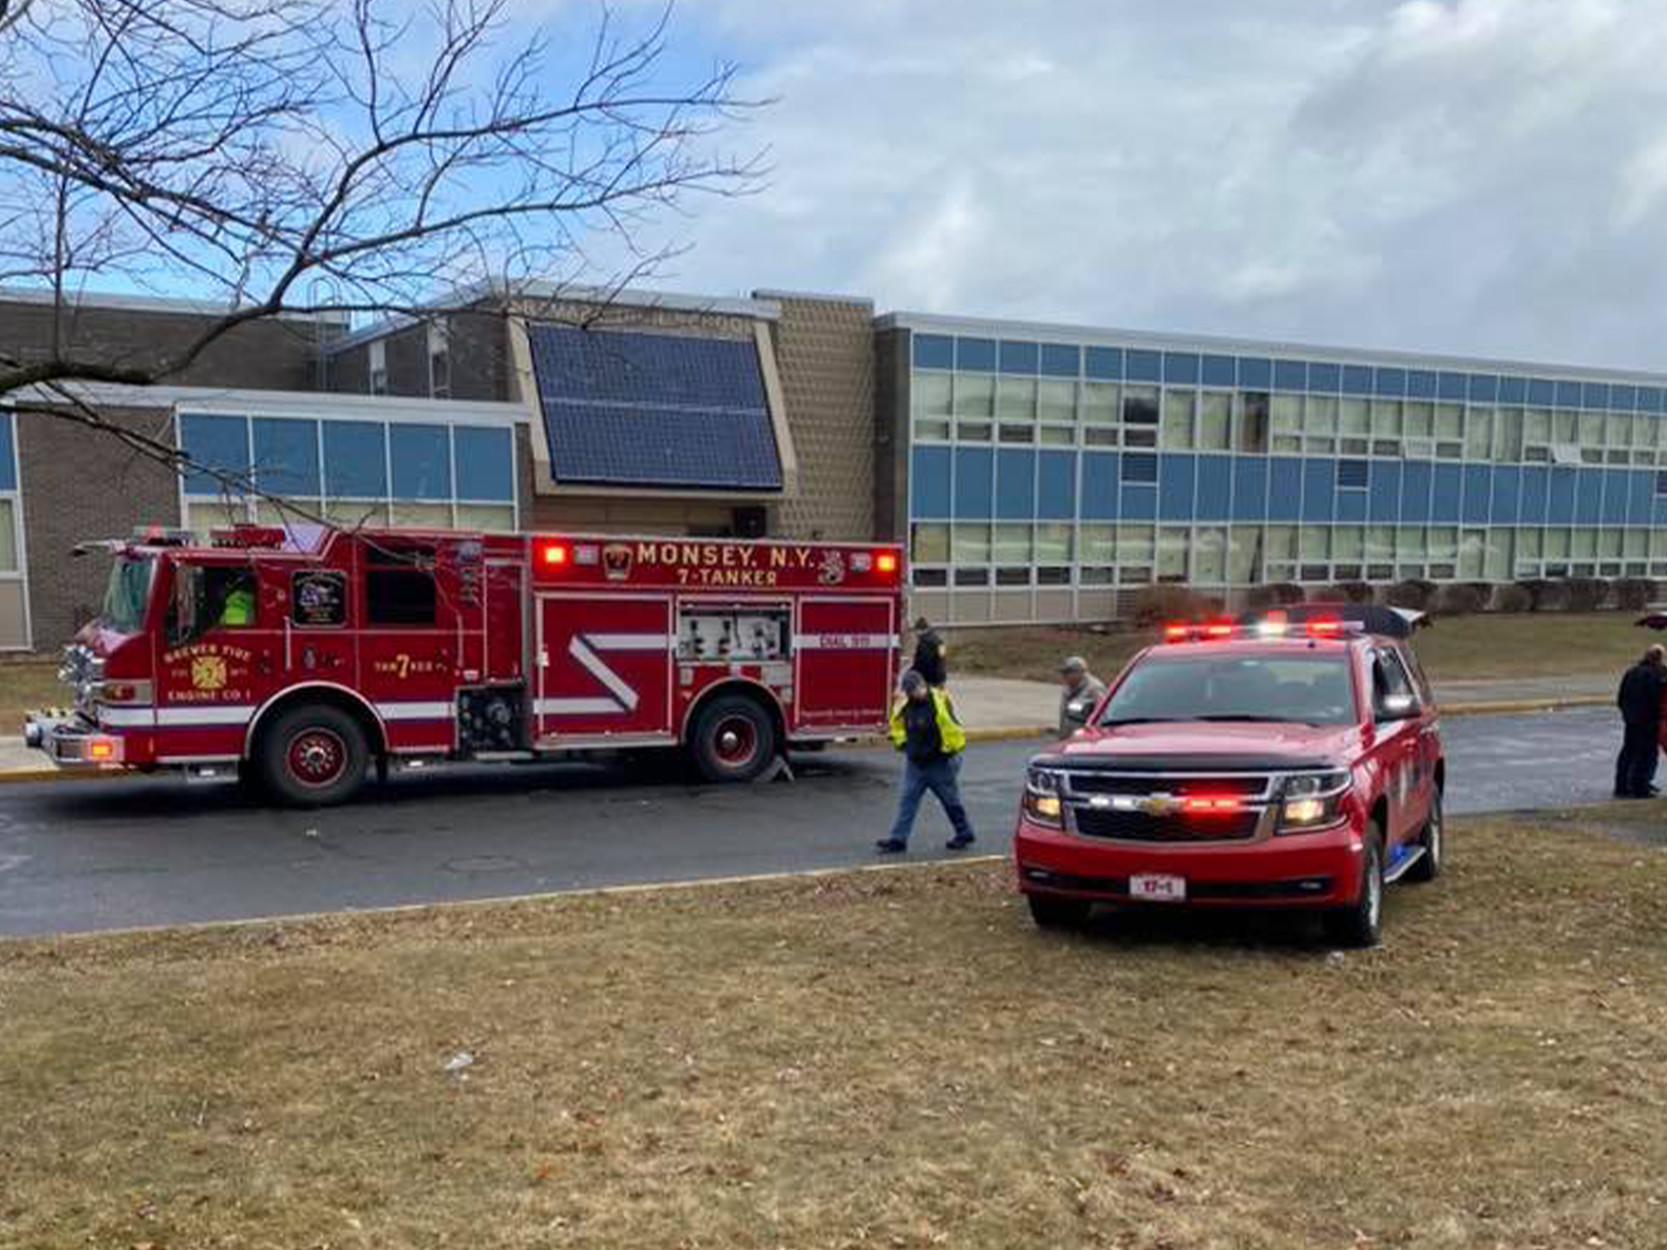 Pepper spray incident at Spring Valley high school sickens student, security guard; sparks evacuation: authorities